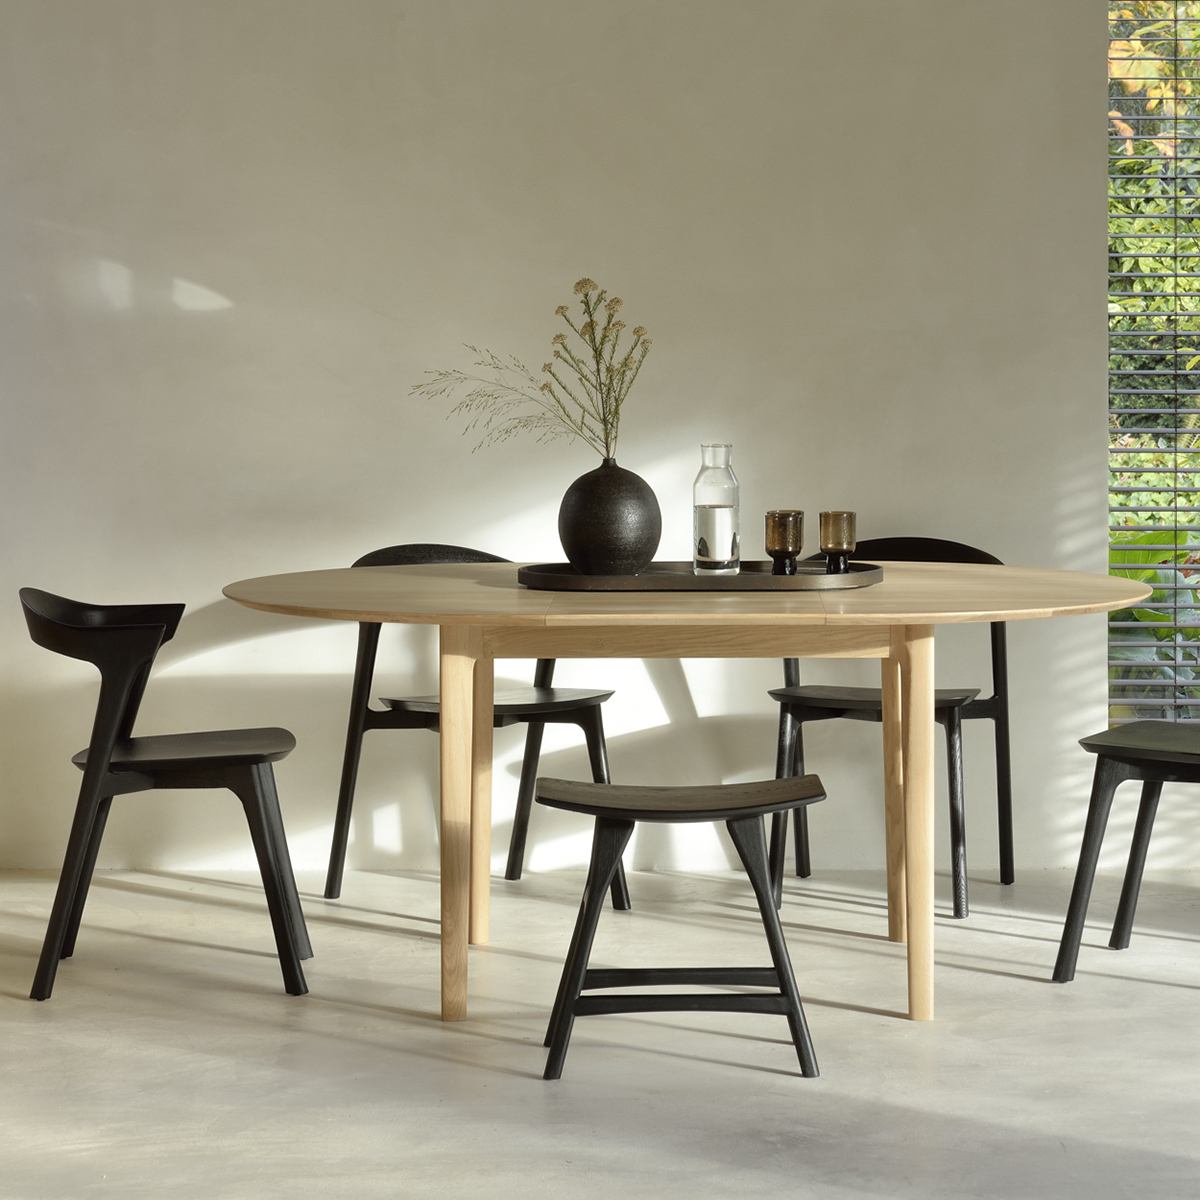 Bok Round Extendable Dining table - Oak, Bok black Chair - Oak, Osso Black Stool - Oak